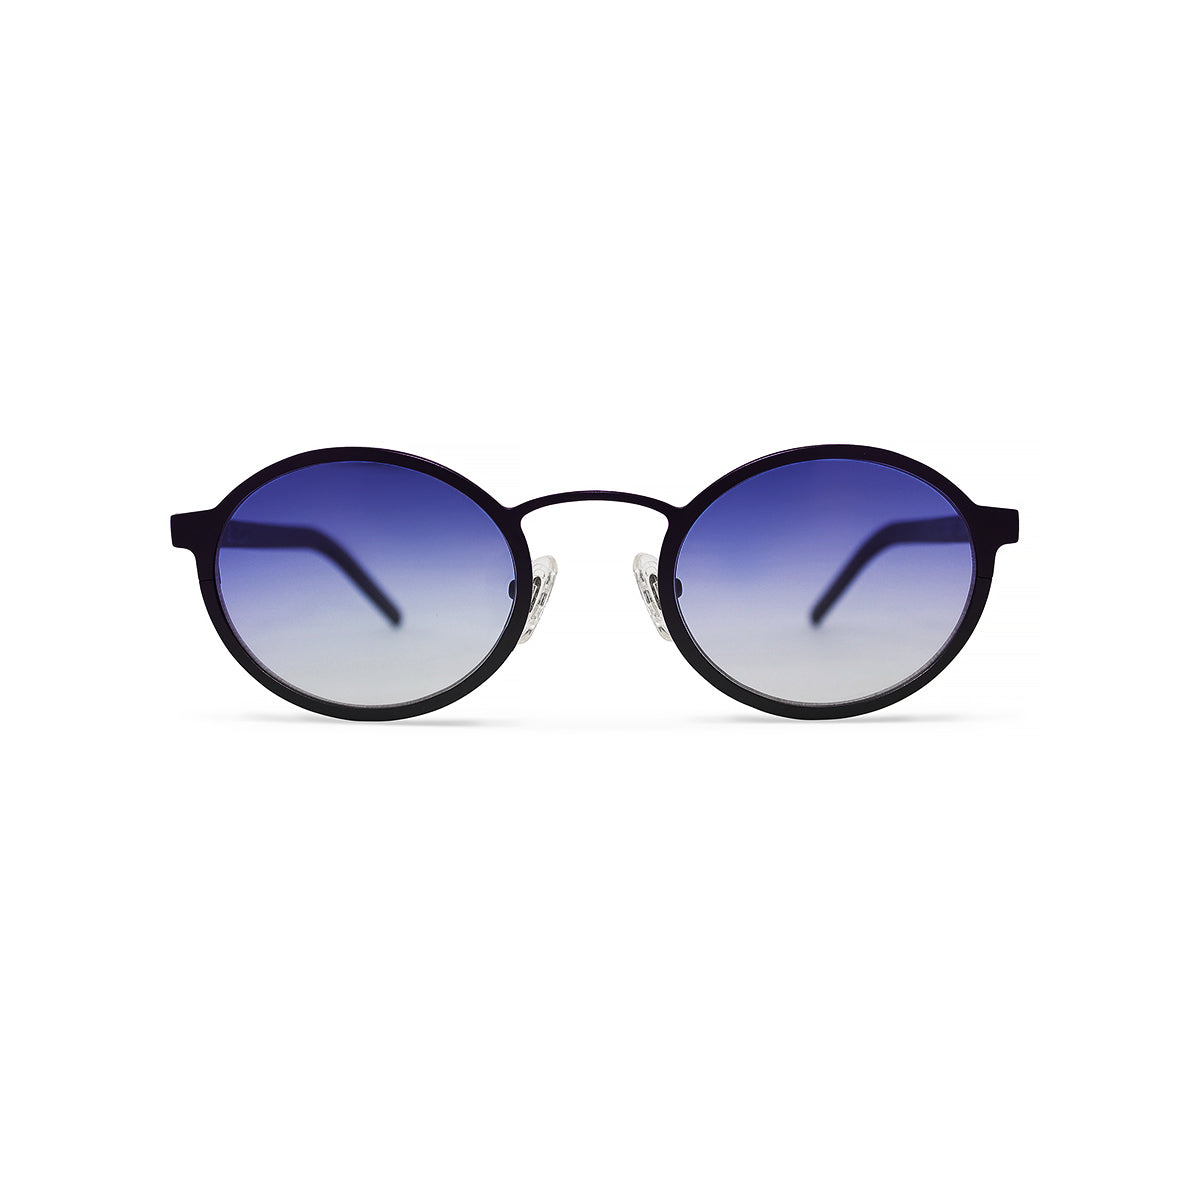 Metal. Matte Black. Lilac Lens. - BLYSZAK eyewear eyewear - eyewear, optical, sunglasses